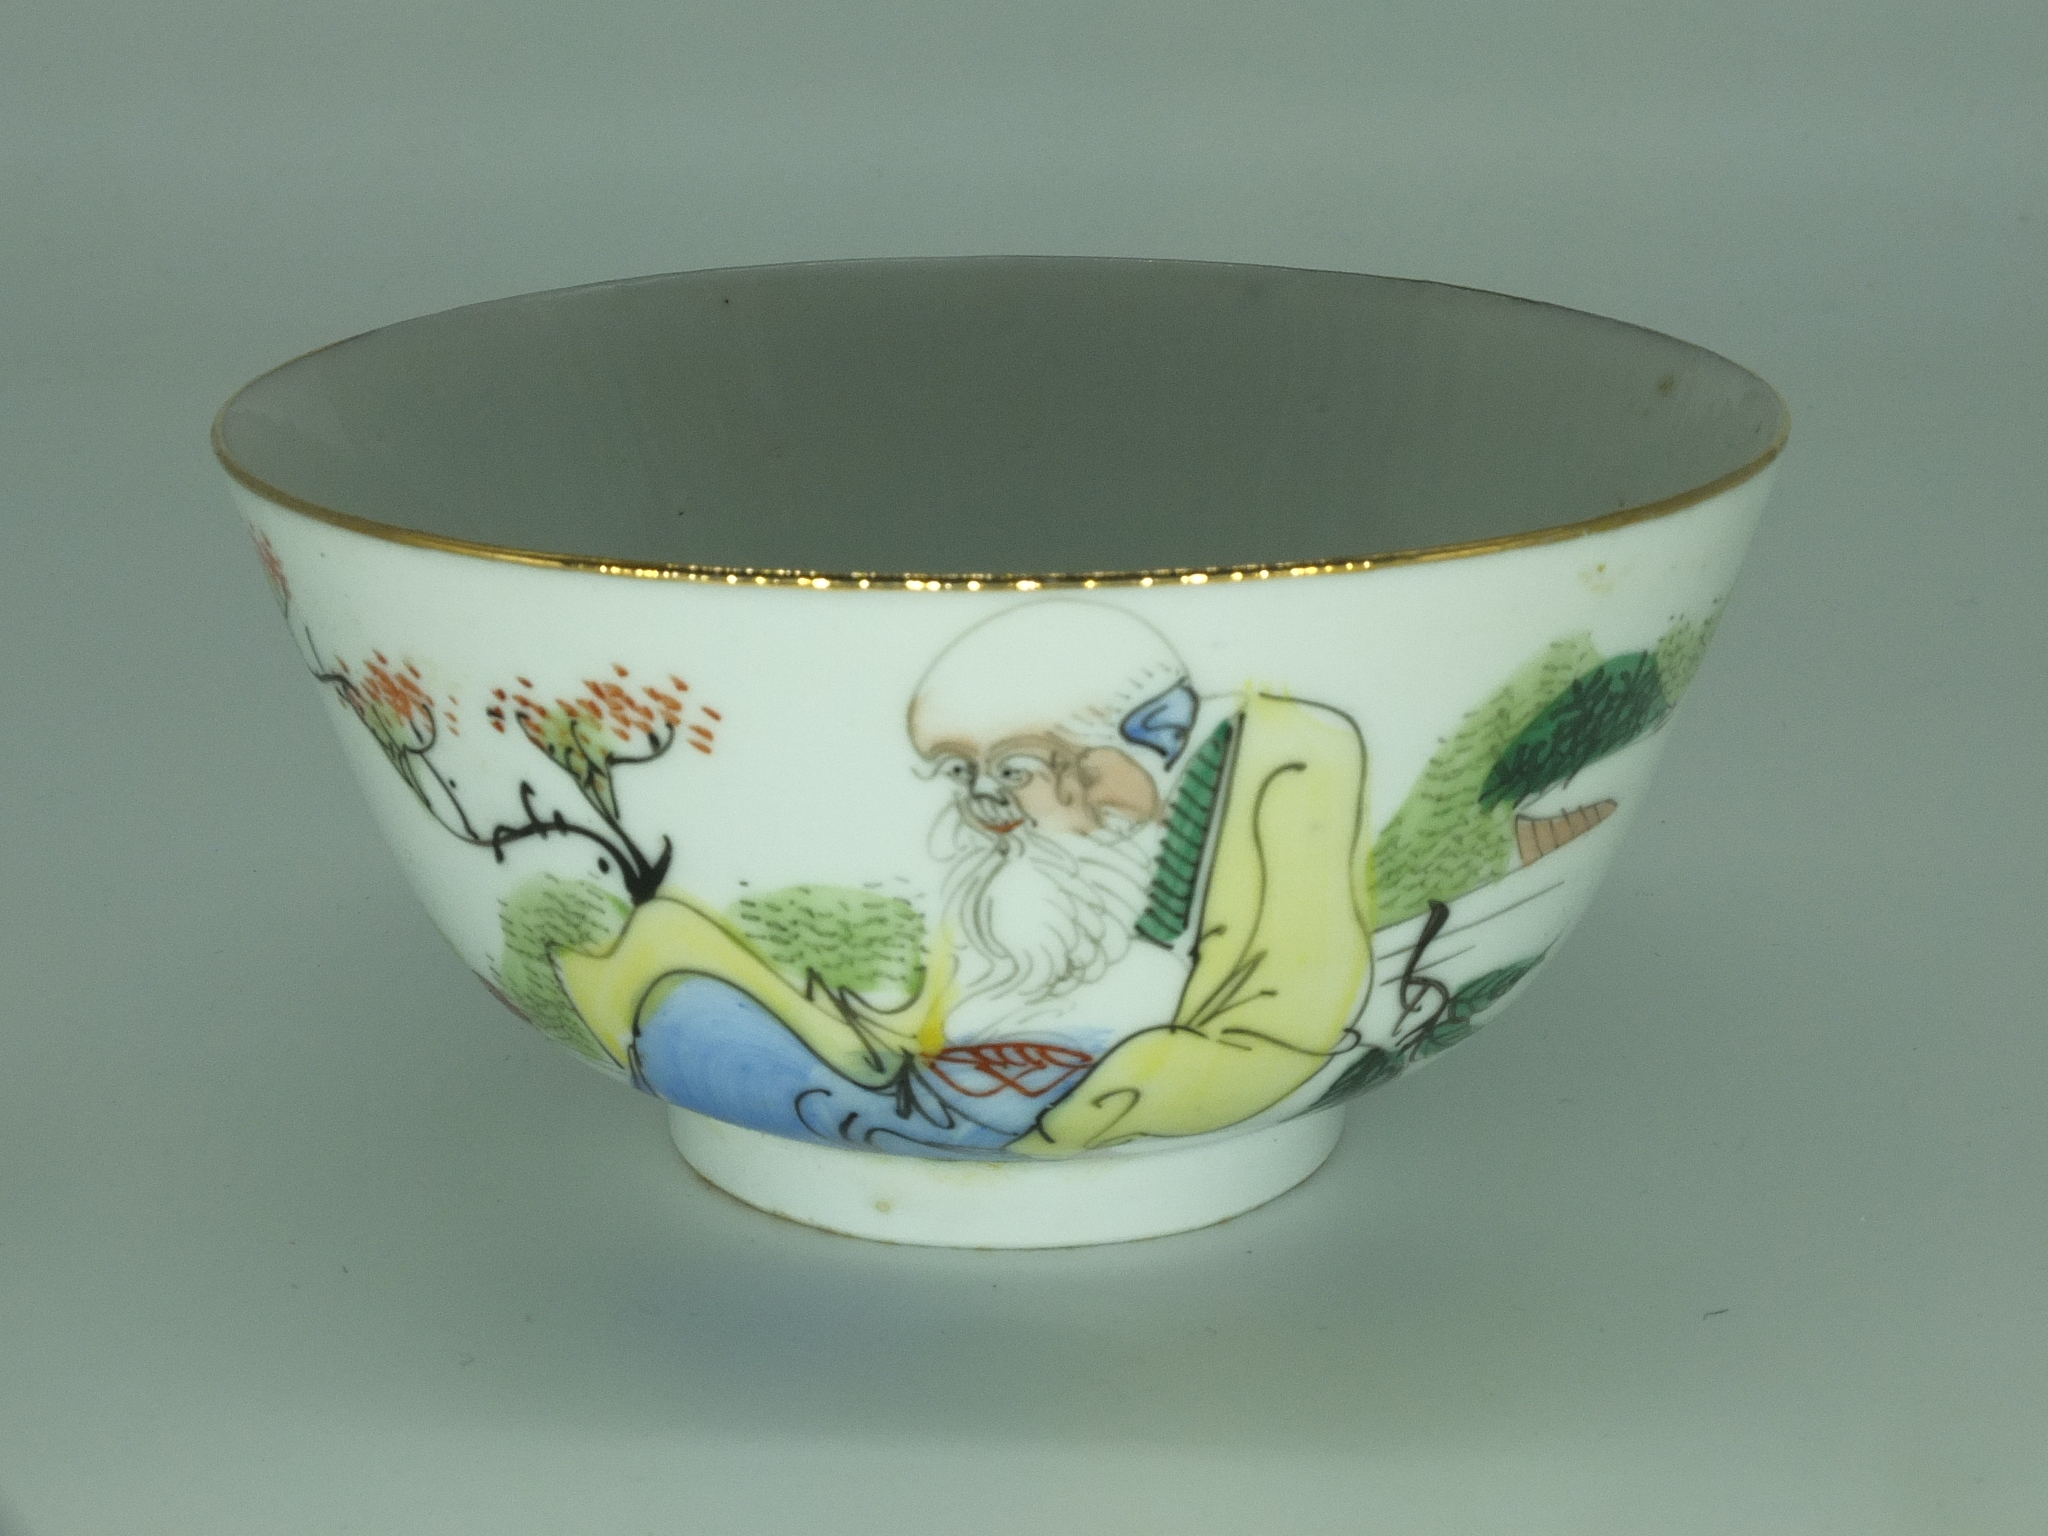 'Chinese Enamel Decorated Porcelain Bowl Republic Period 20th Century'